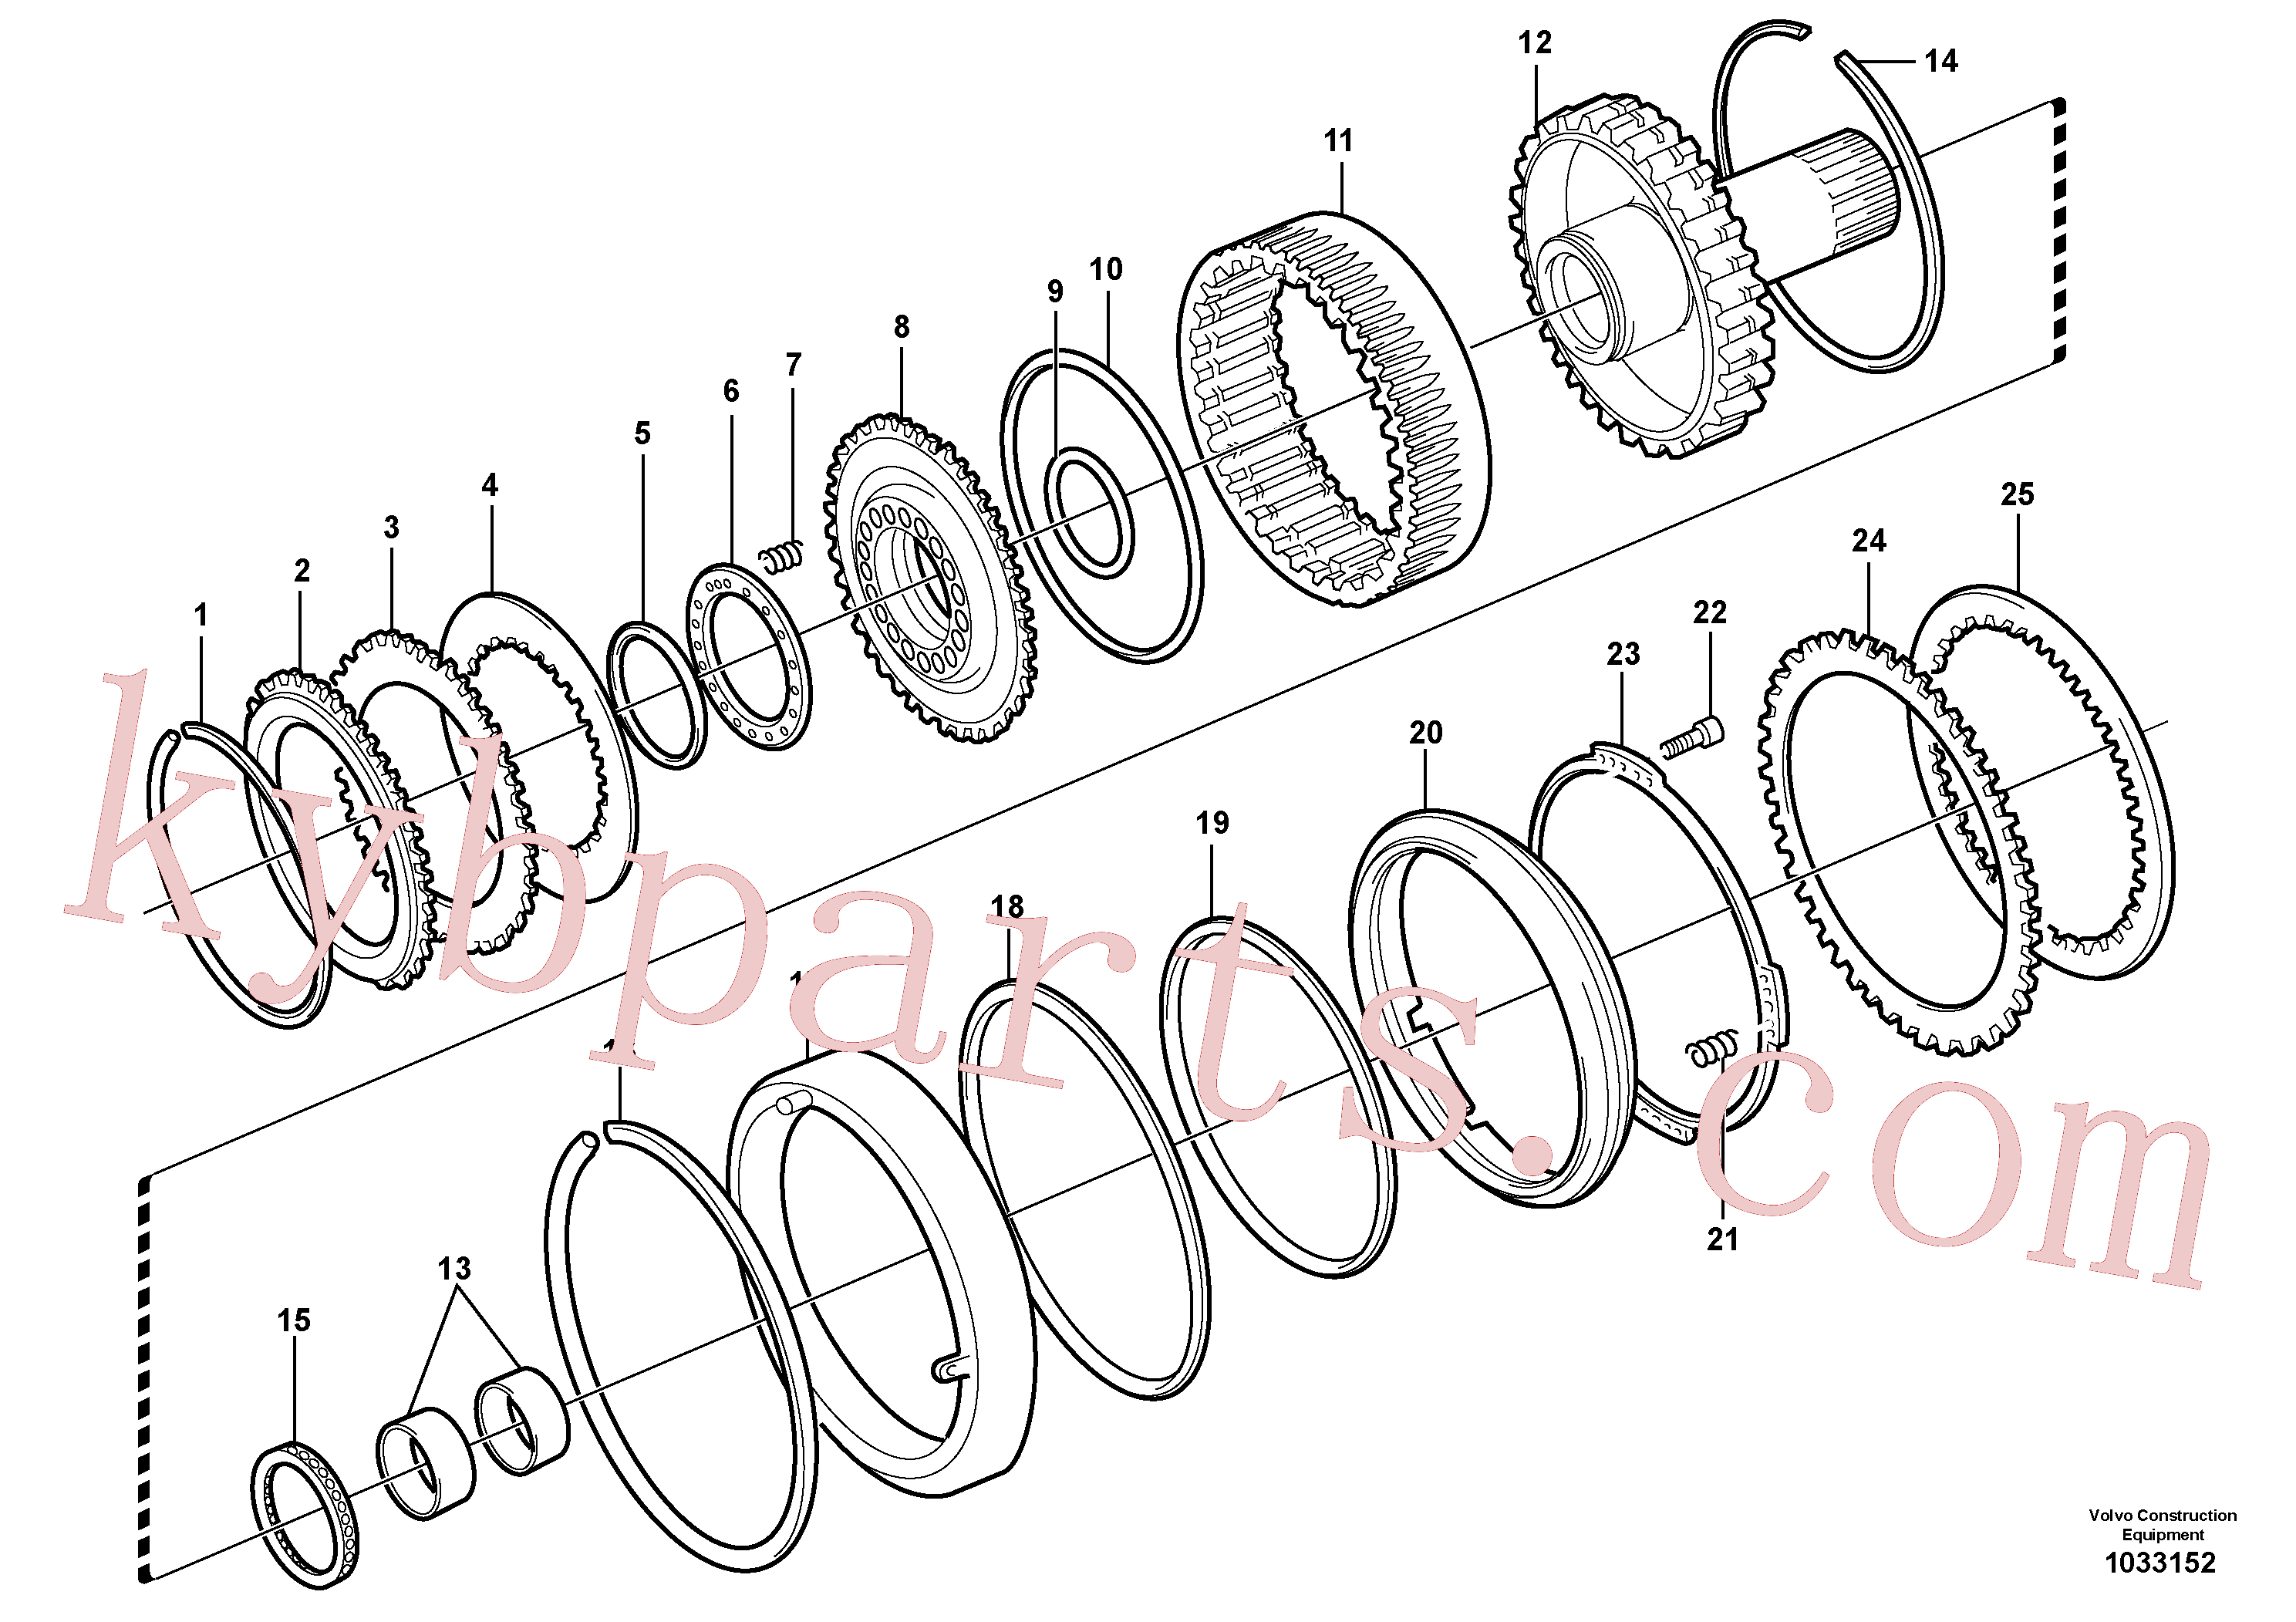 VOE11989805 for Volvo Clutch and brake(1033152 assembly)